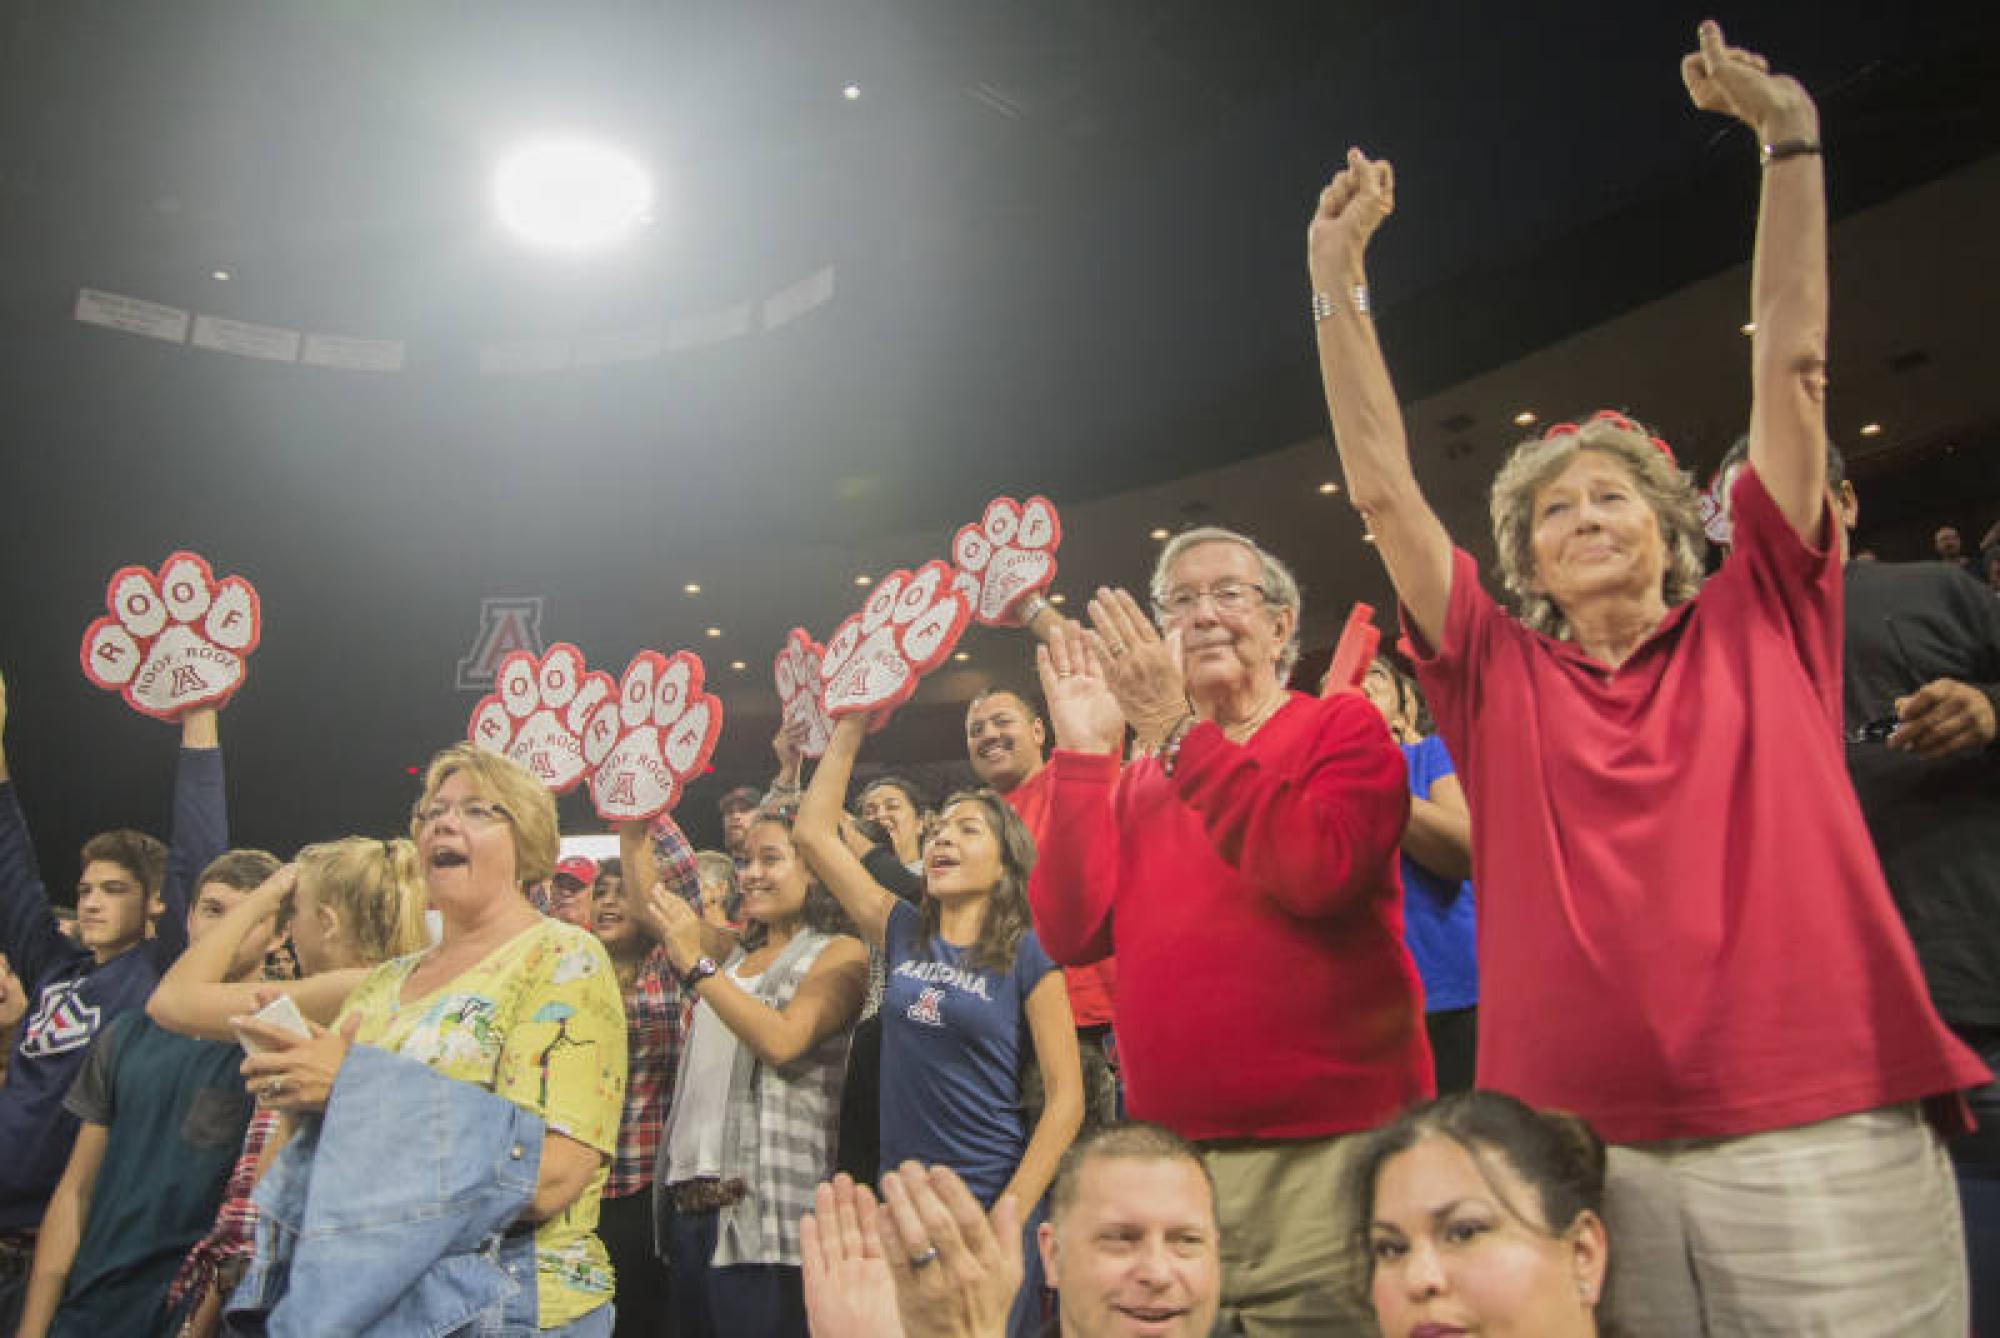 Fans cheer on their Arizona Wildcats.